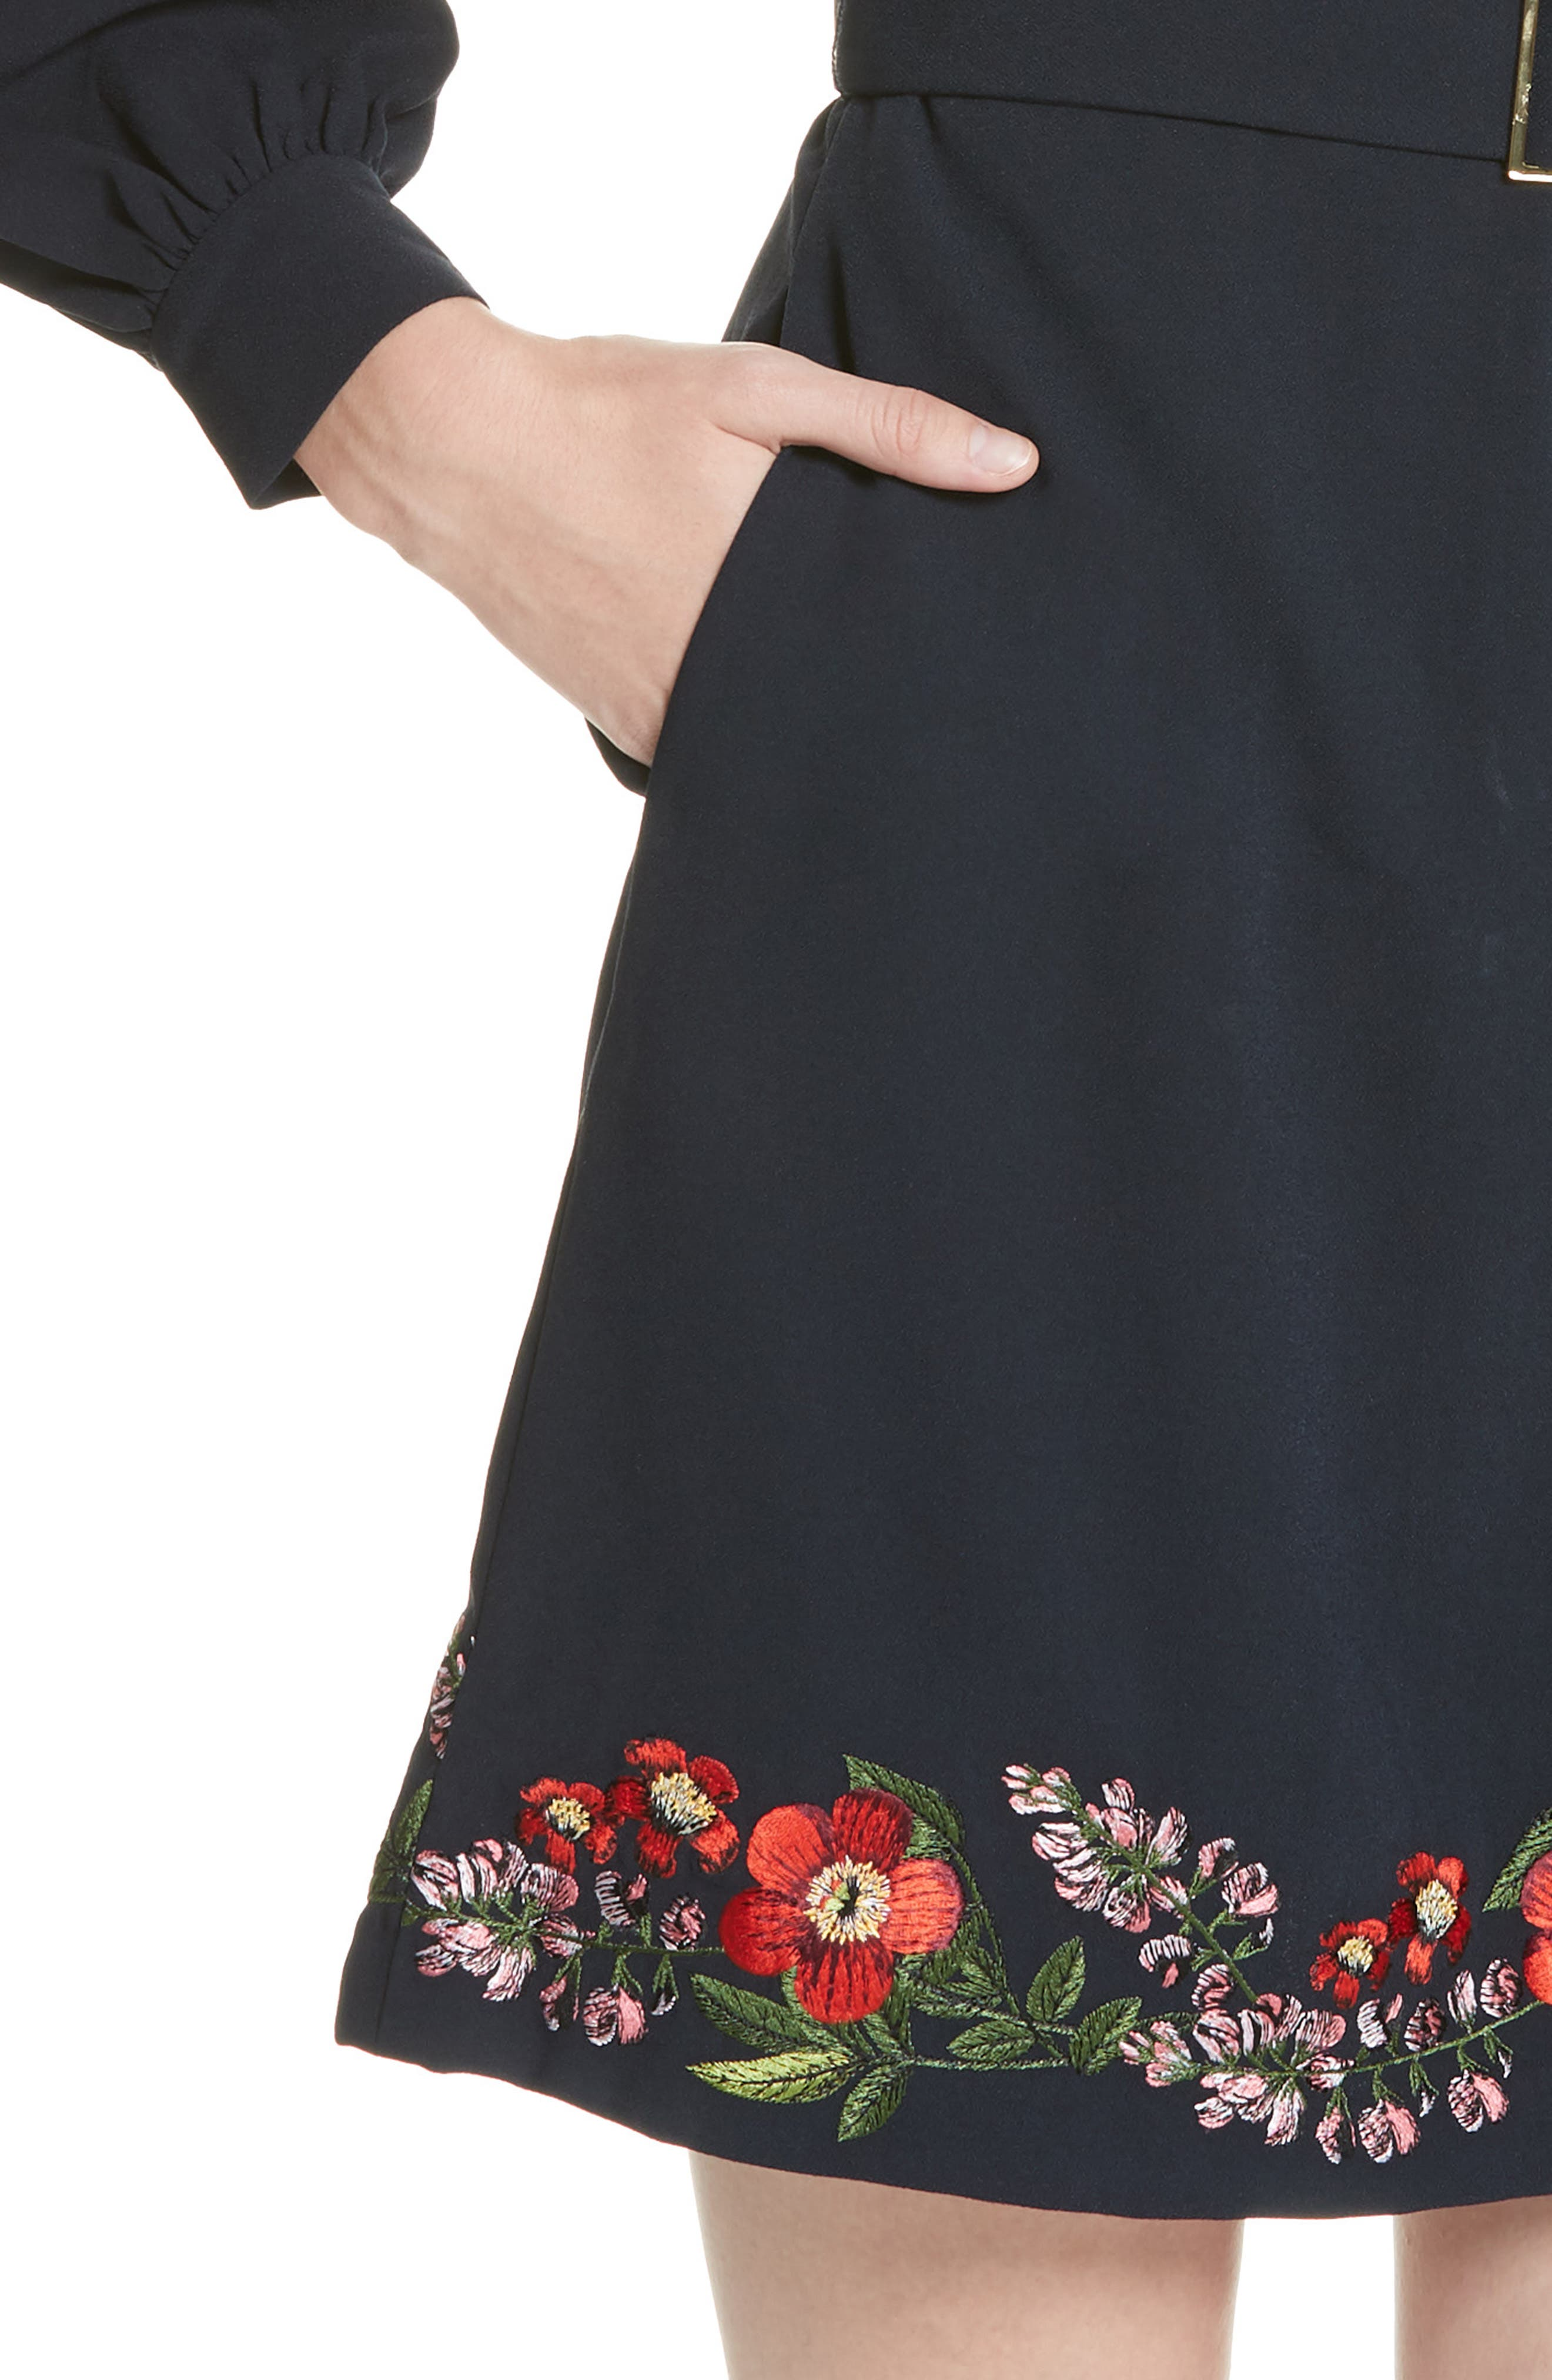 Silia Kirstenbosch Embroidered Dress,                             Alternate thumbnail 4, color,                             DARK BLUE